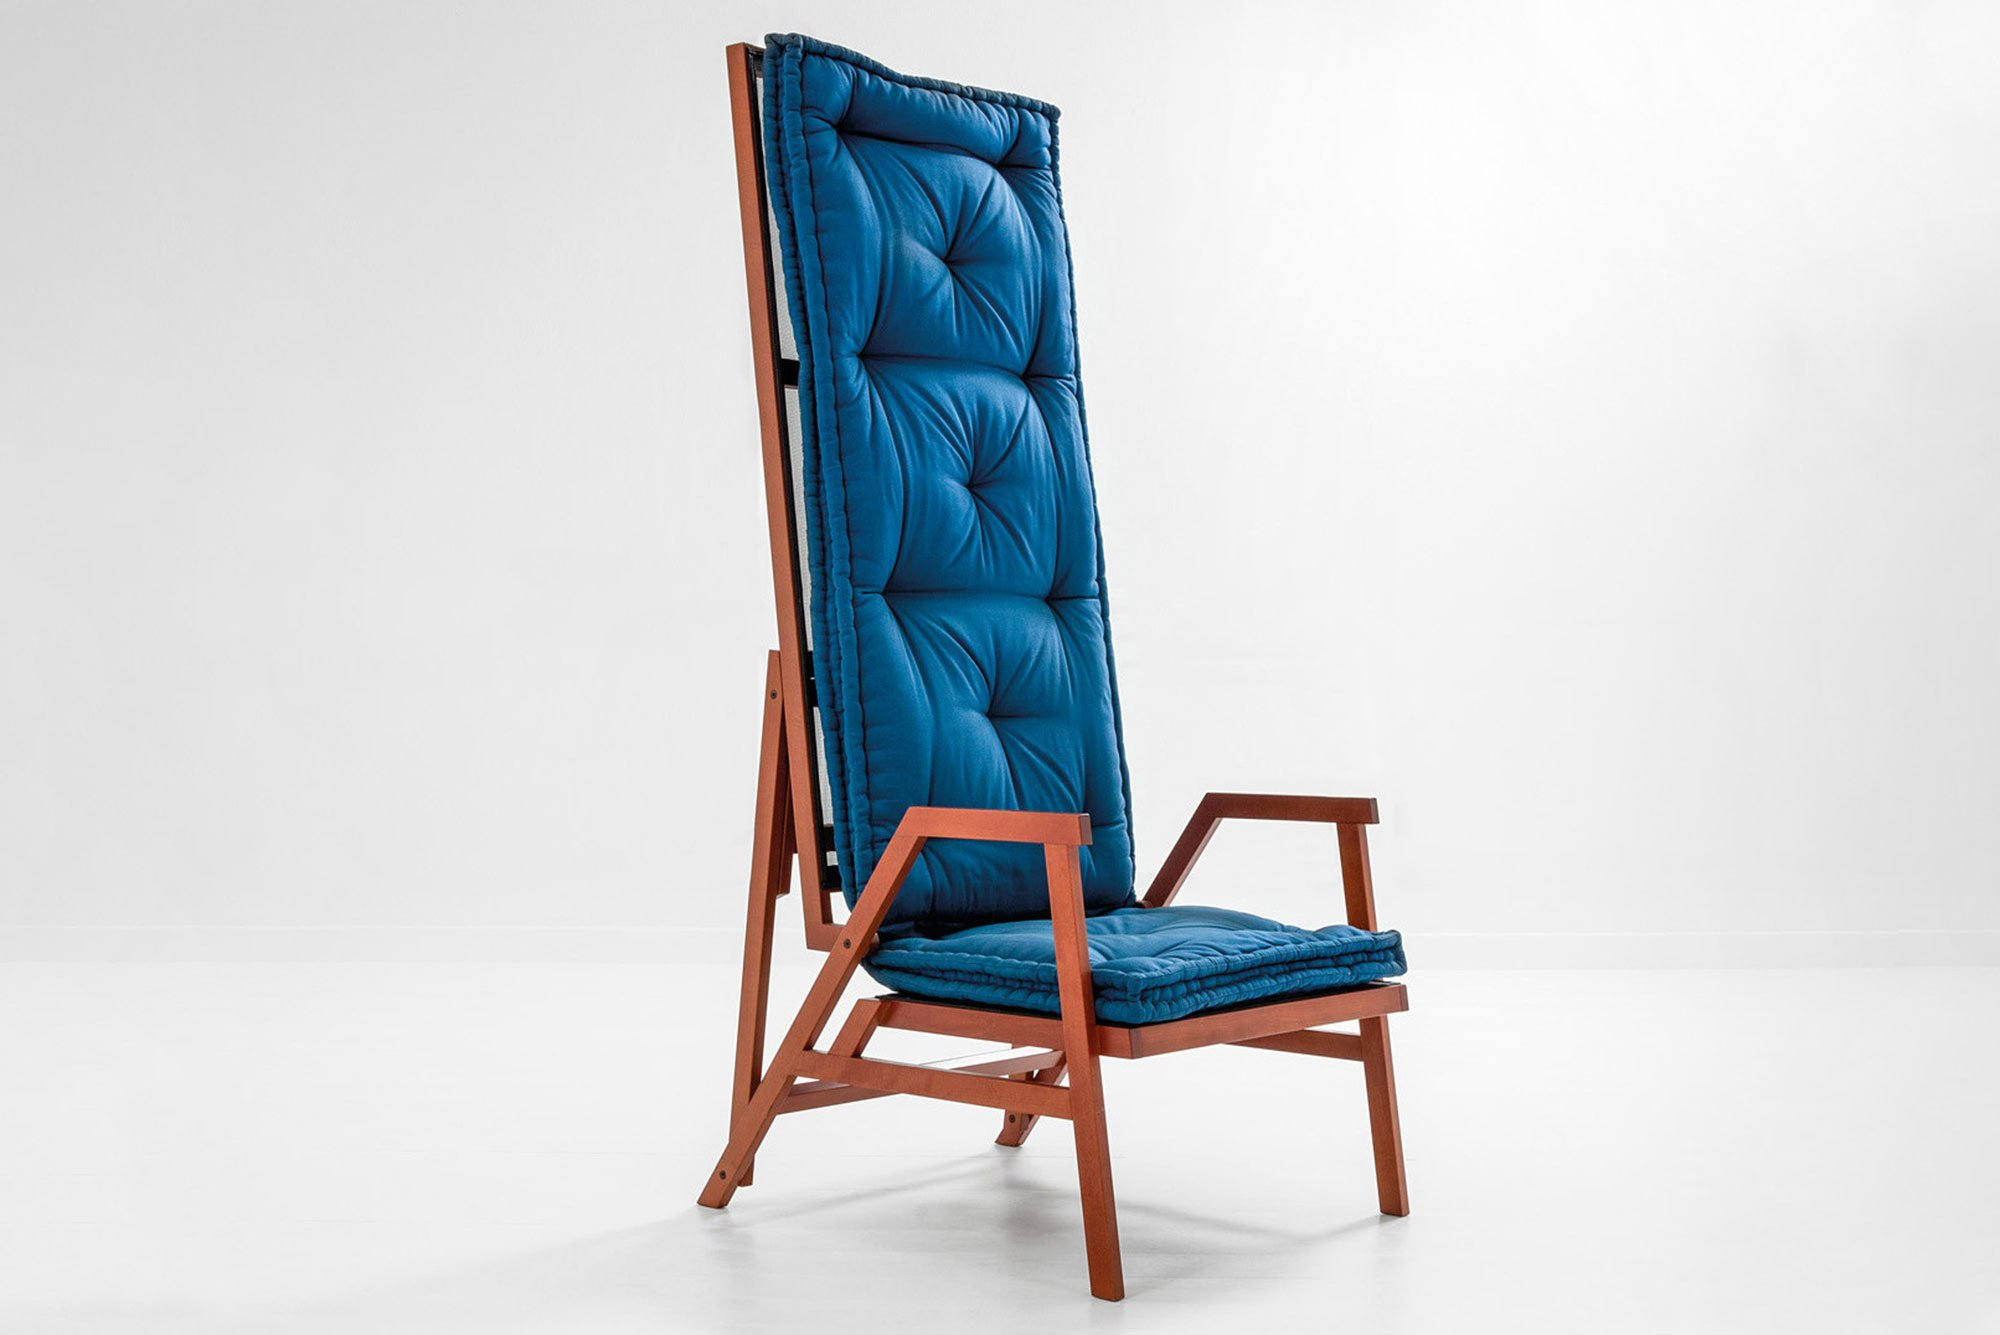 Armchair-bed model Polet